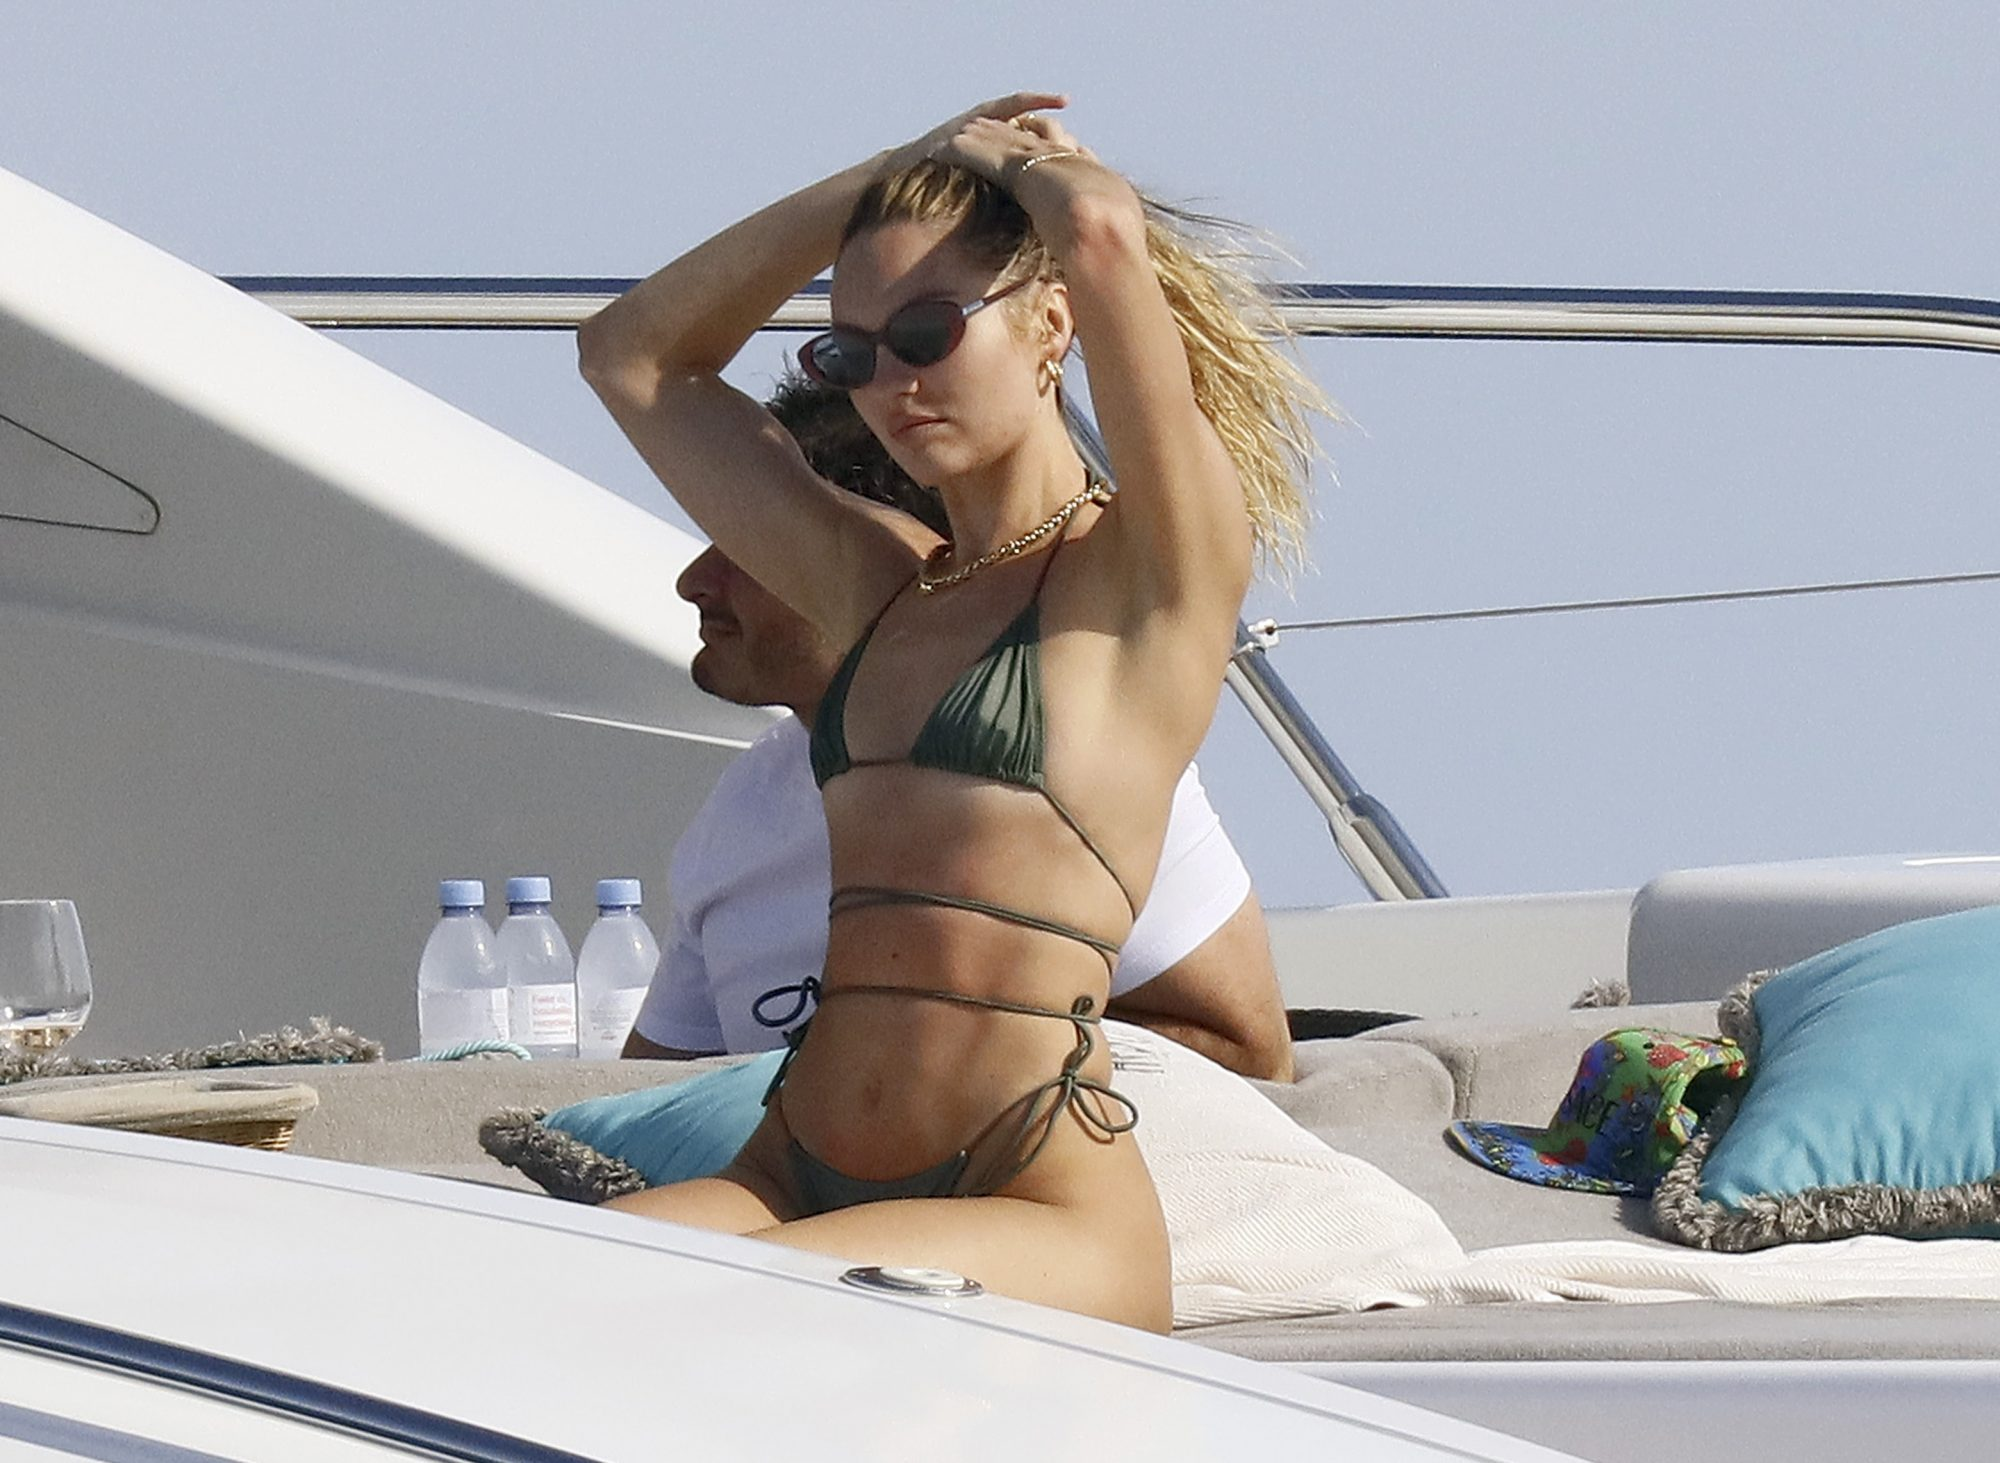 Candice Swanepoel Shows Off her Killer Body on a Yacht with a Mystery Man